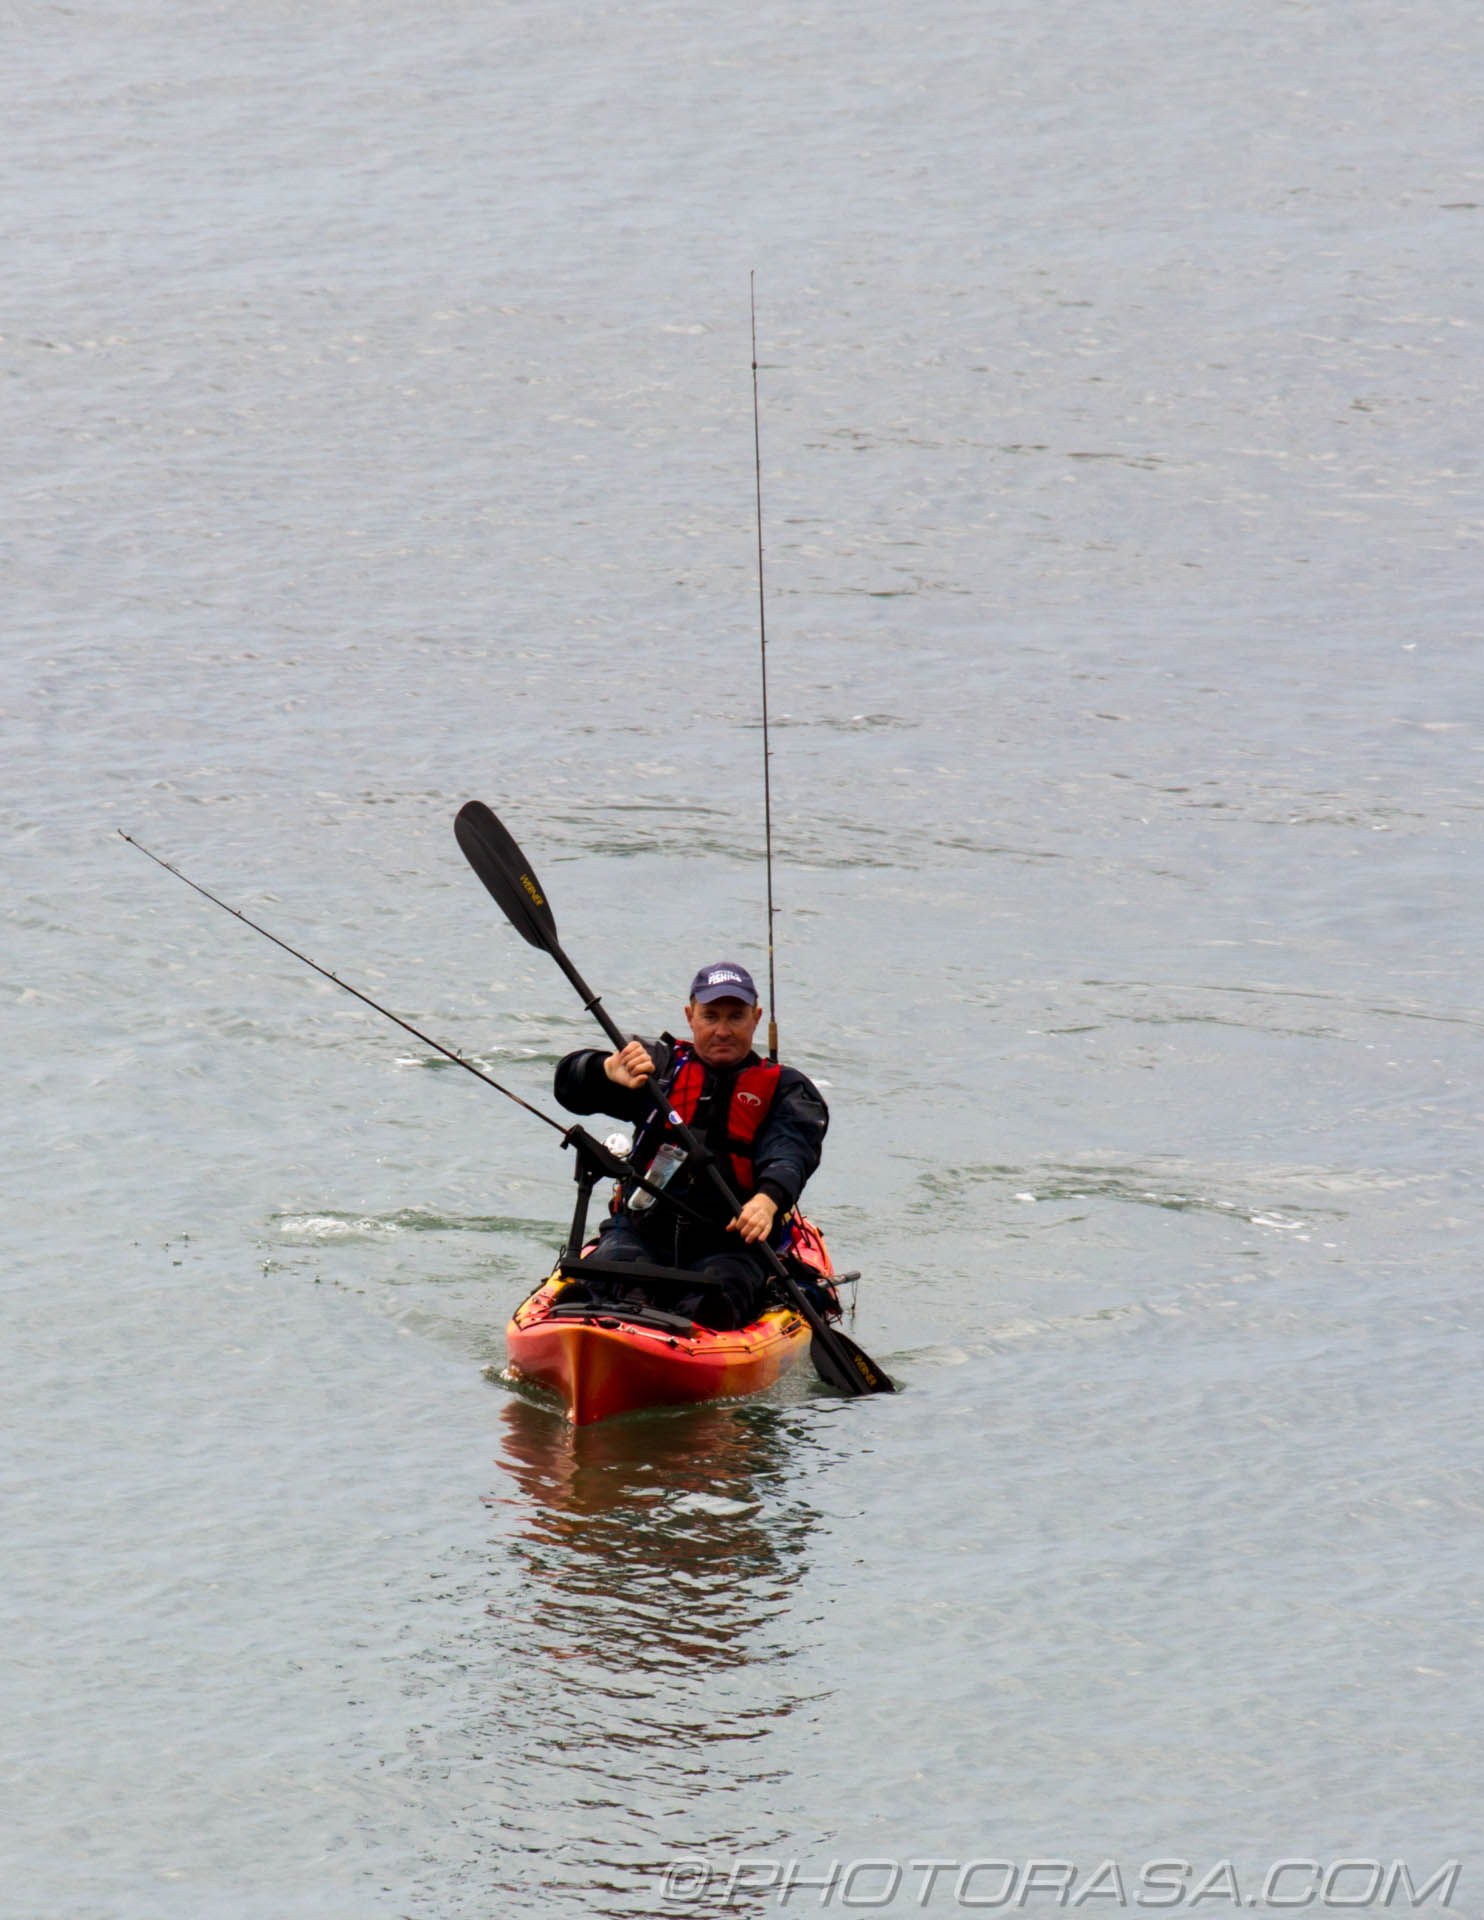 http://photorasa.com/sea-lyme-regis/fisherman-in-canoe/